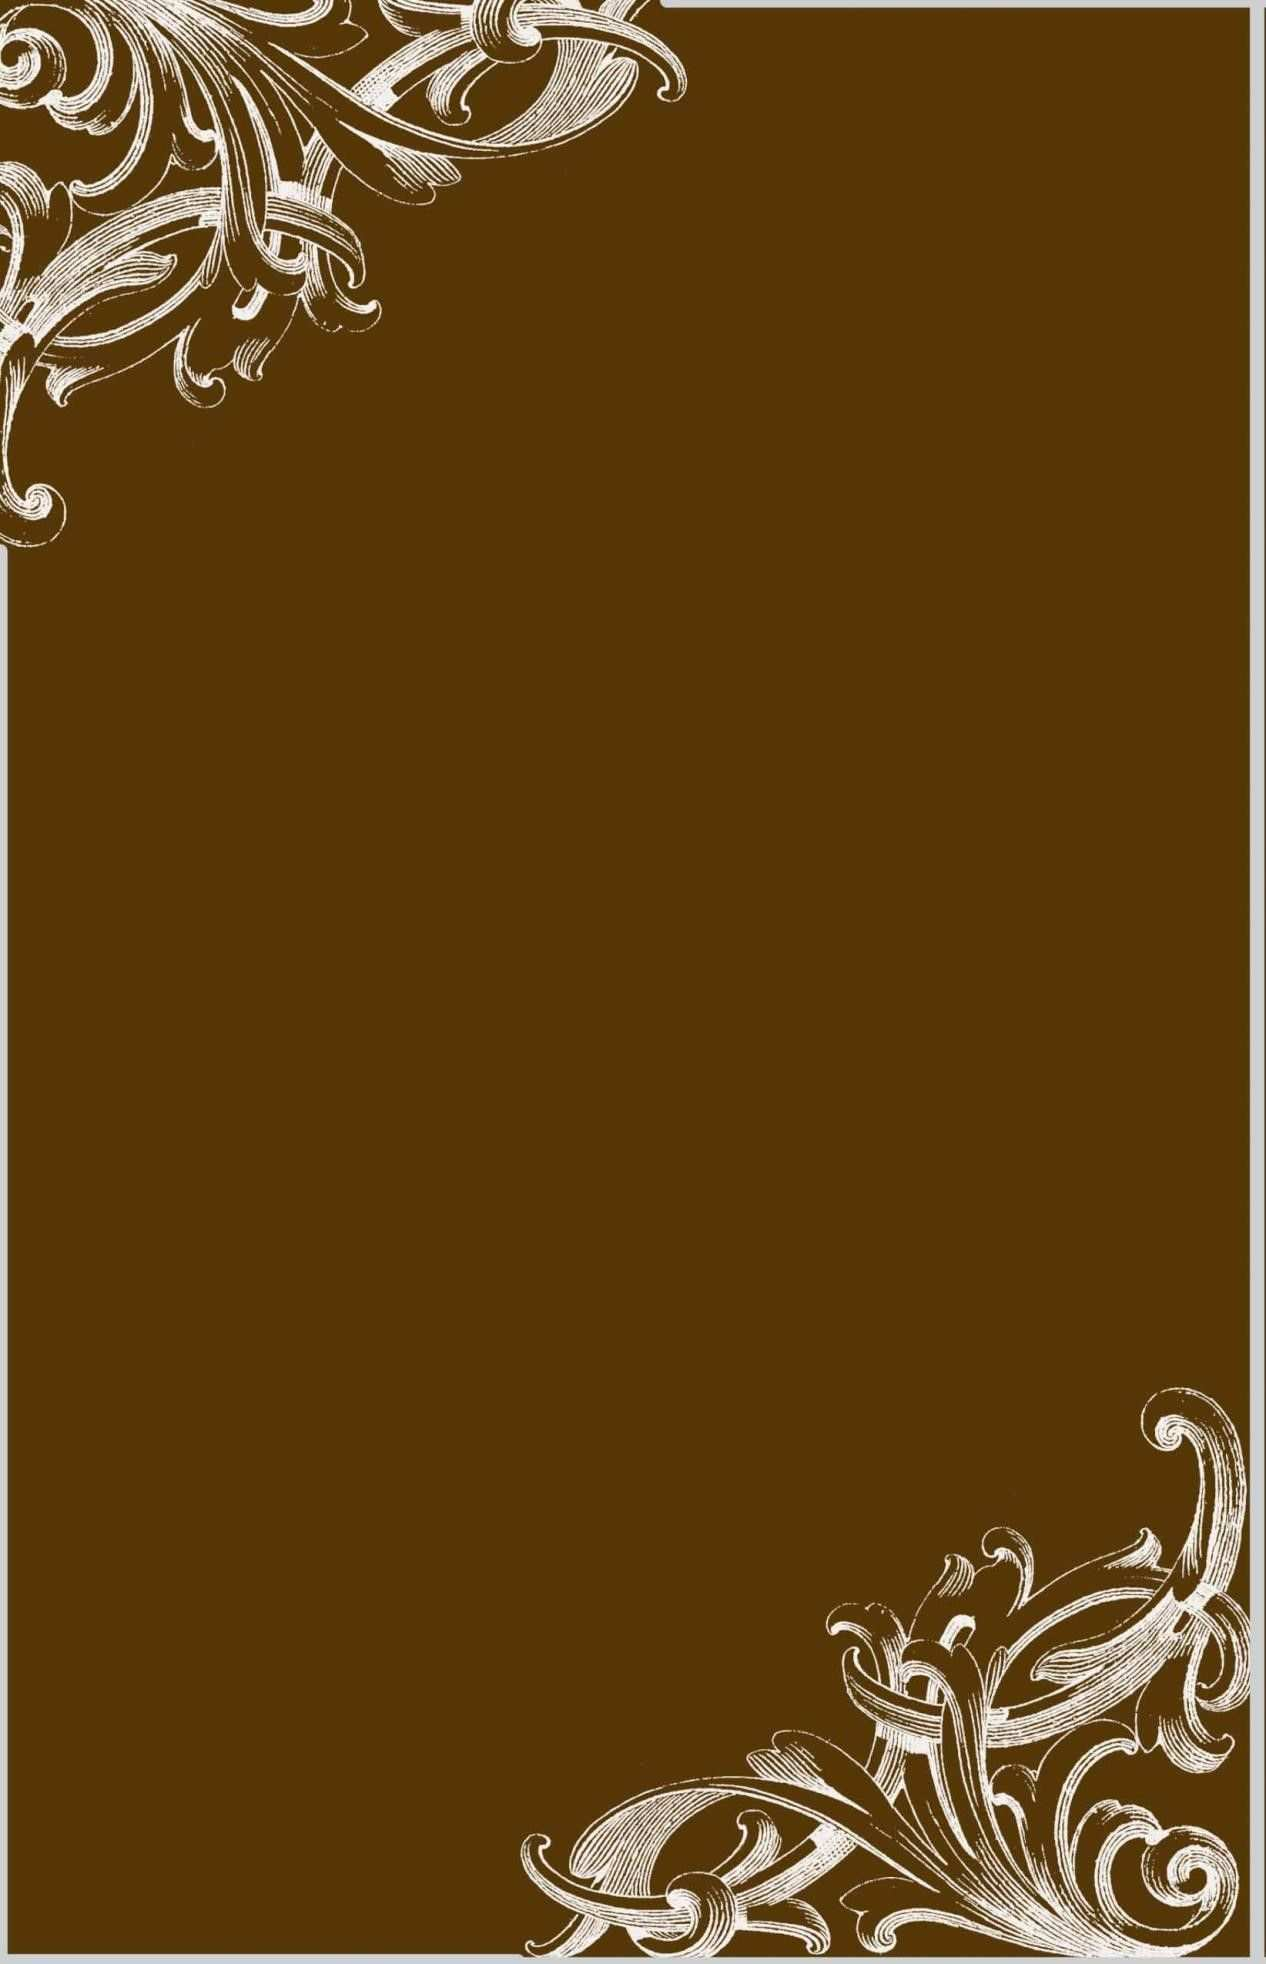 73 Format Blank Template For Invitation Card Layouts with Blank Template For Invitation Card